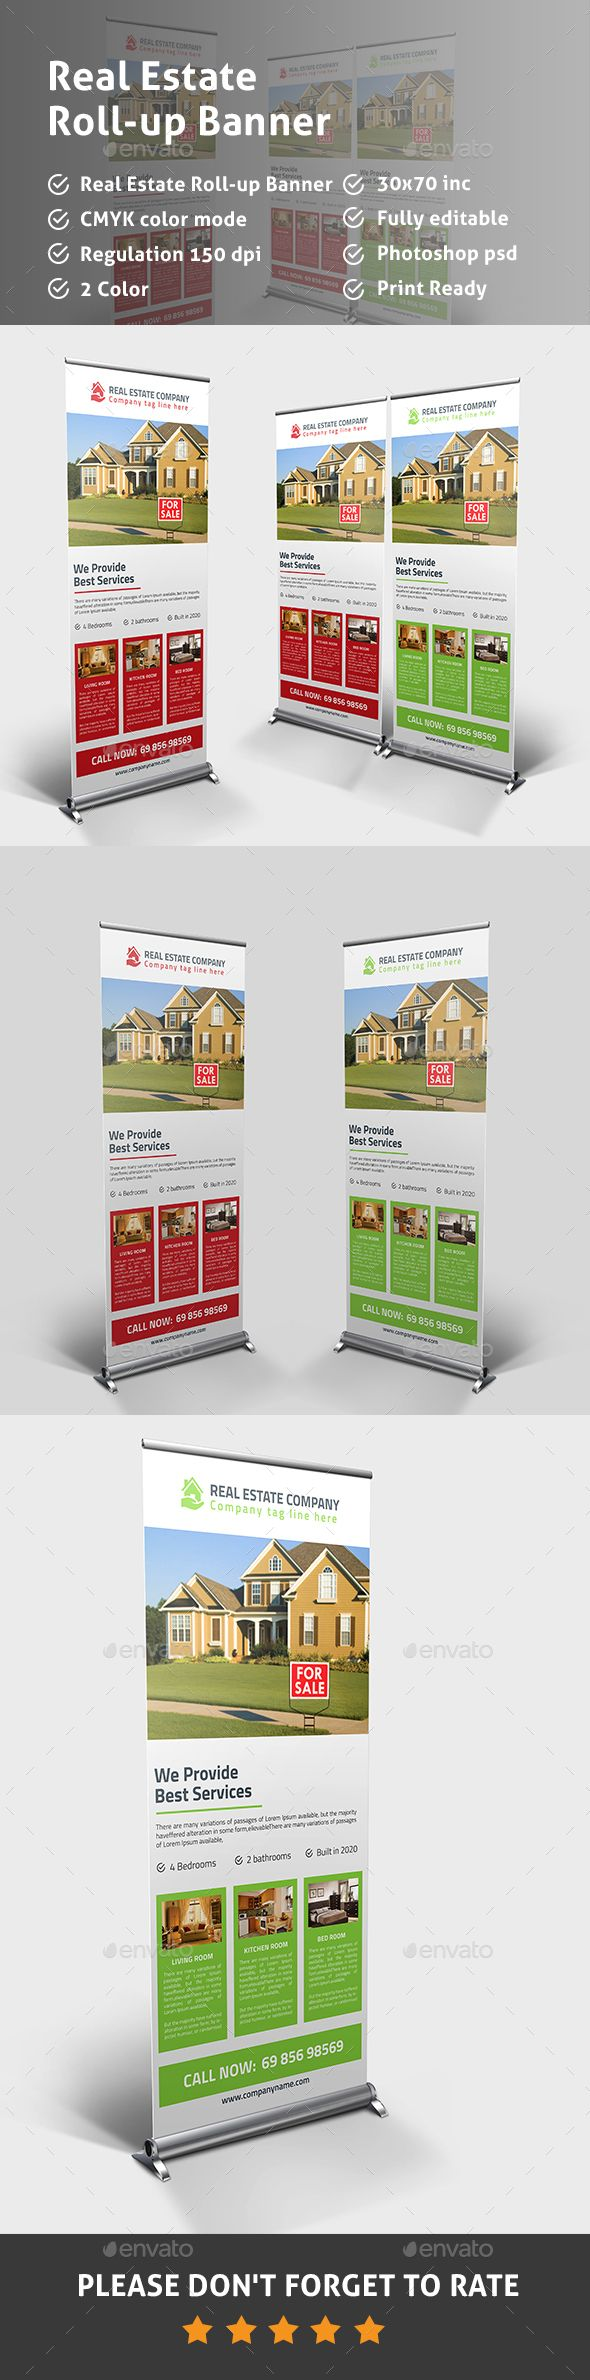 Real Estate Rollup Banner PSD Template